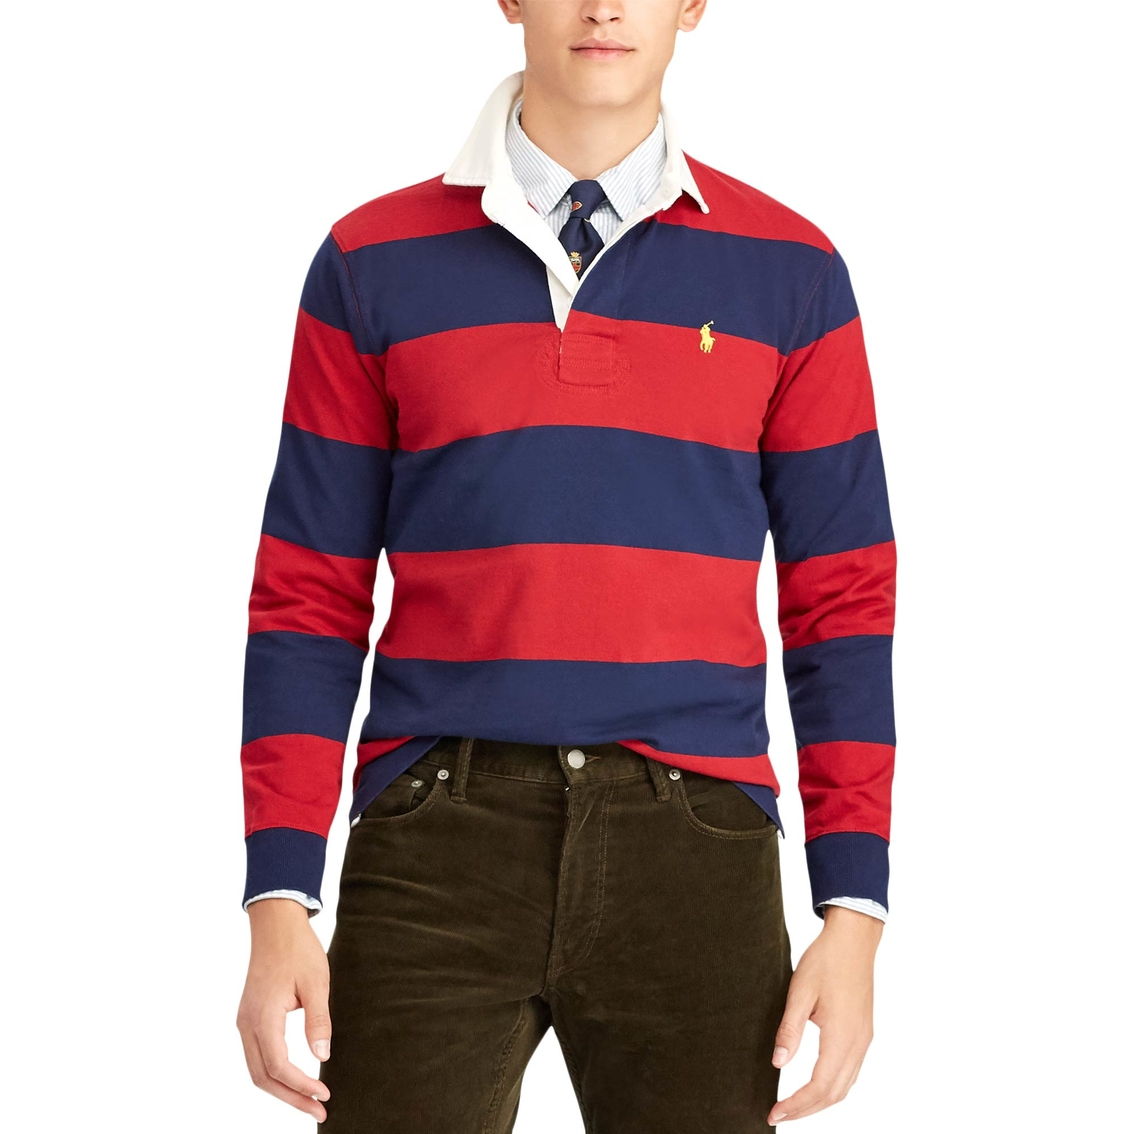 Polo Ralph Lauren The Iconic Rugby Shirt   Polos   Apparel   Shop ... 6d2953eab18